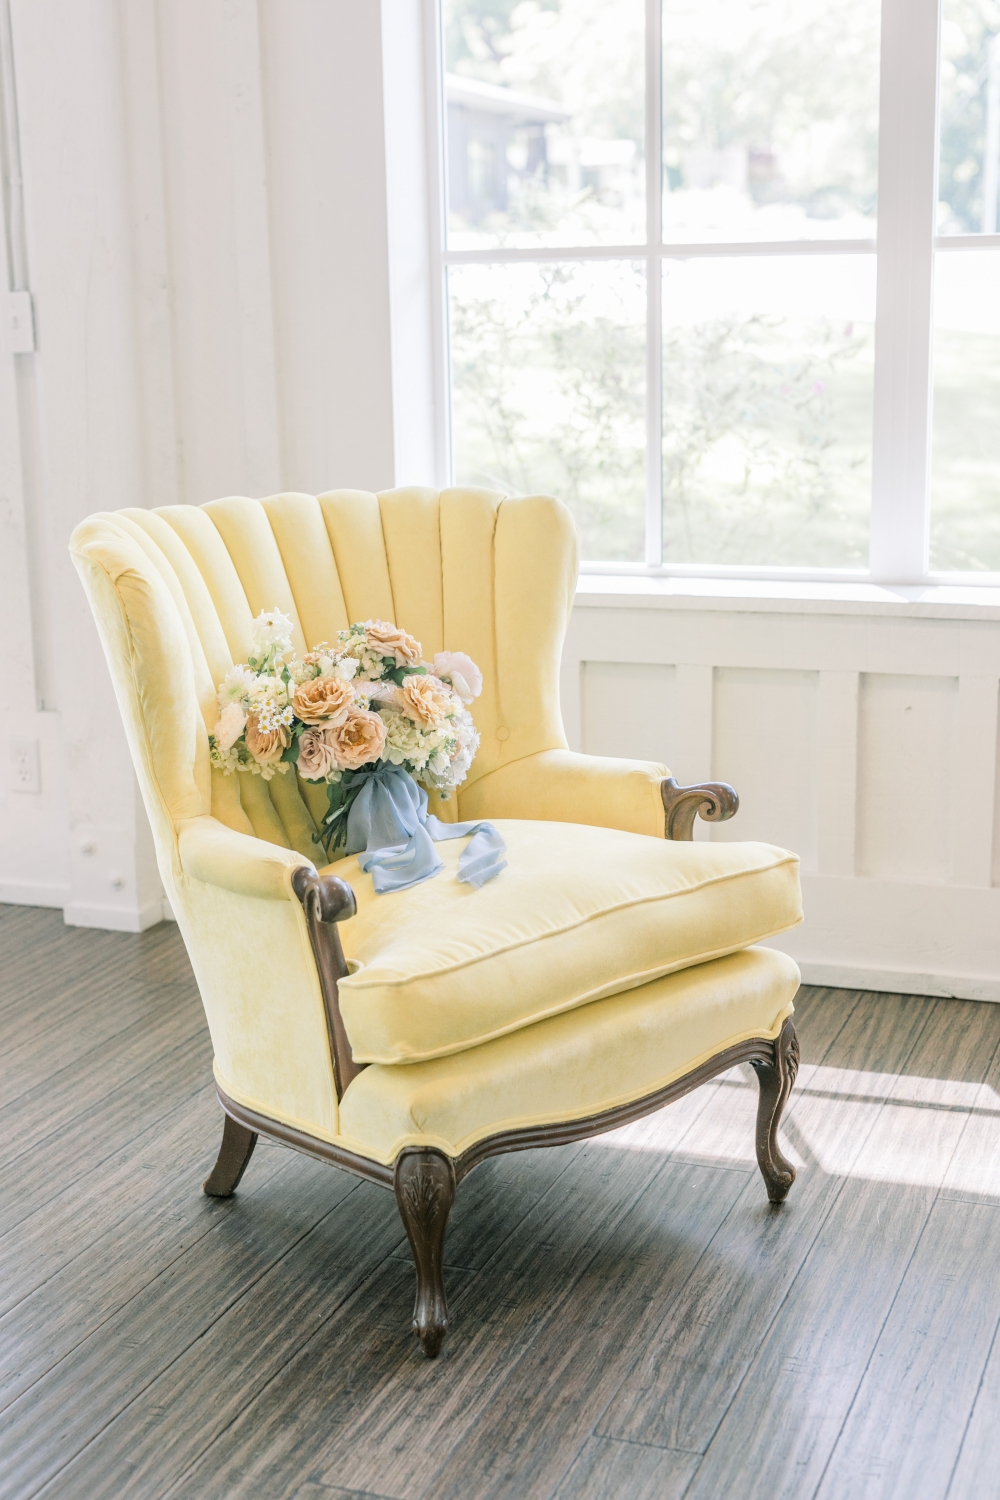 dust blue and peach bouquet on a yellow Victorian chair